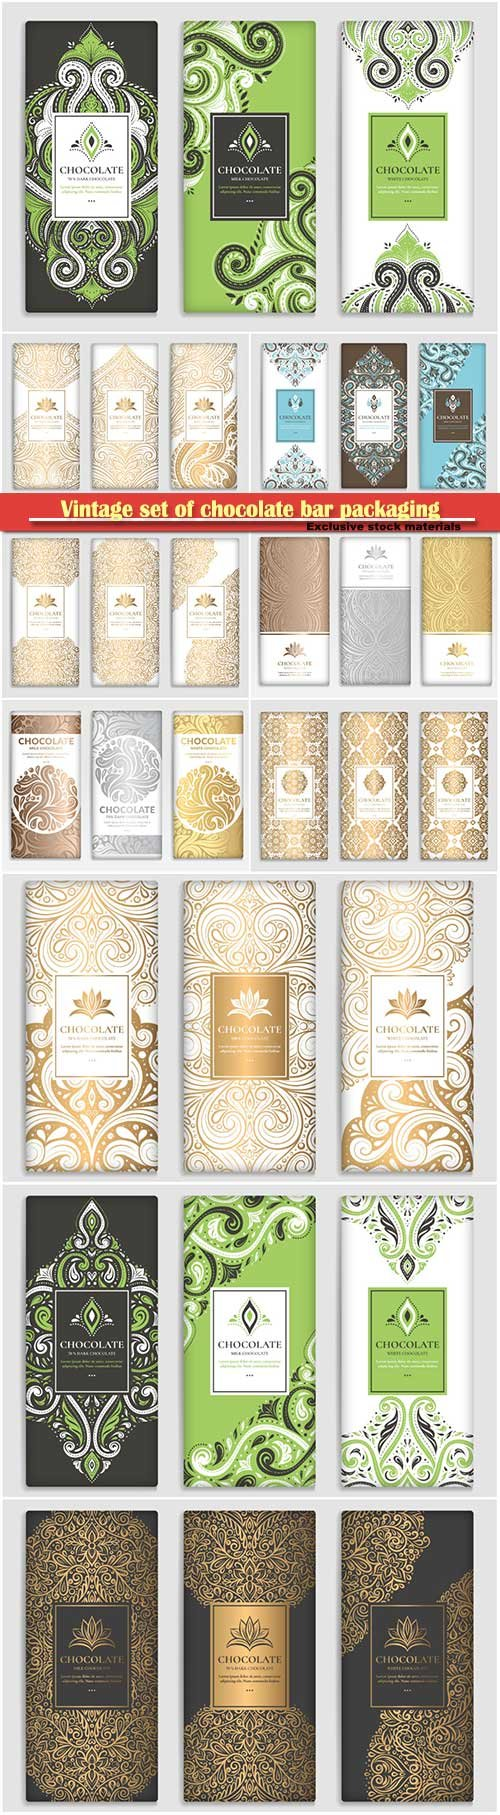 Vintage set of chocolate bar packaging design, vector luxury template with ornament elements